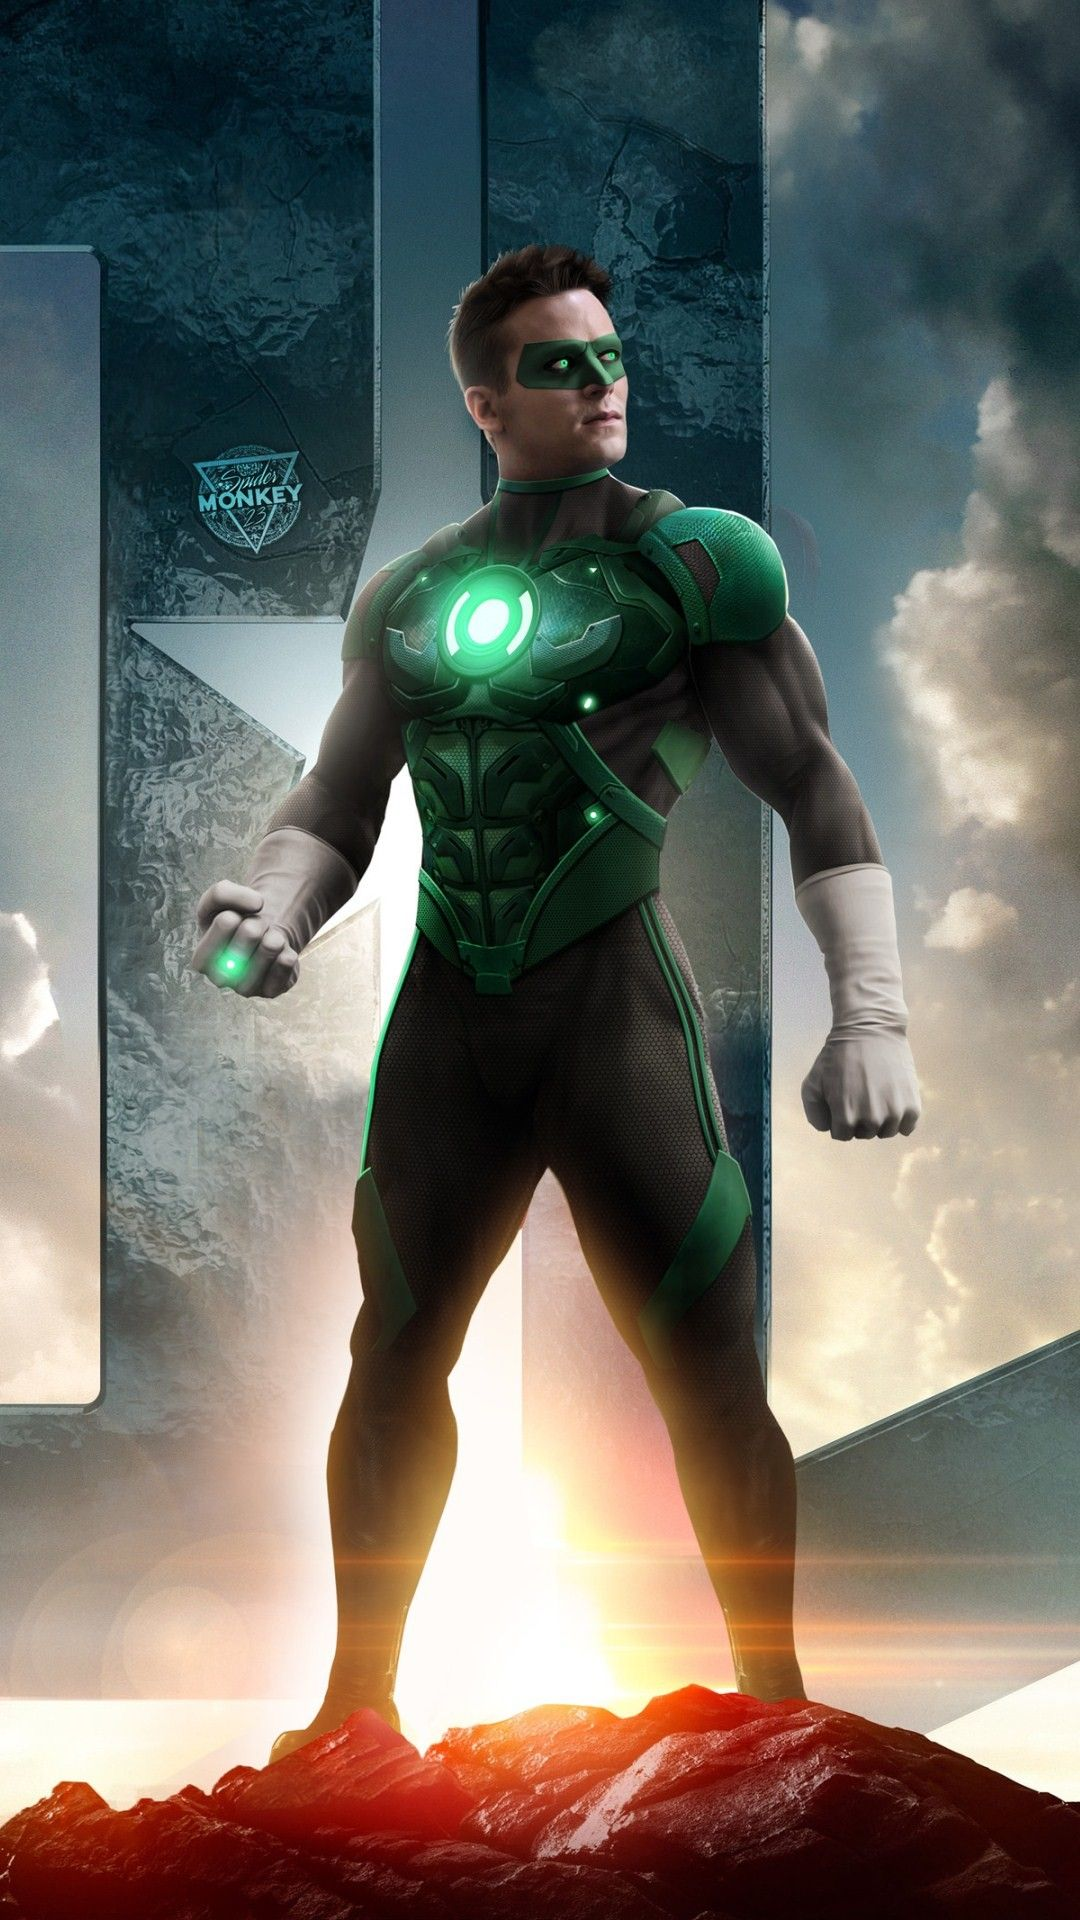 1080x1920 Green Lantern iPhone Wallpaper (74+ images)